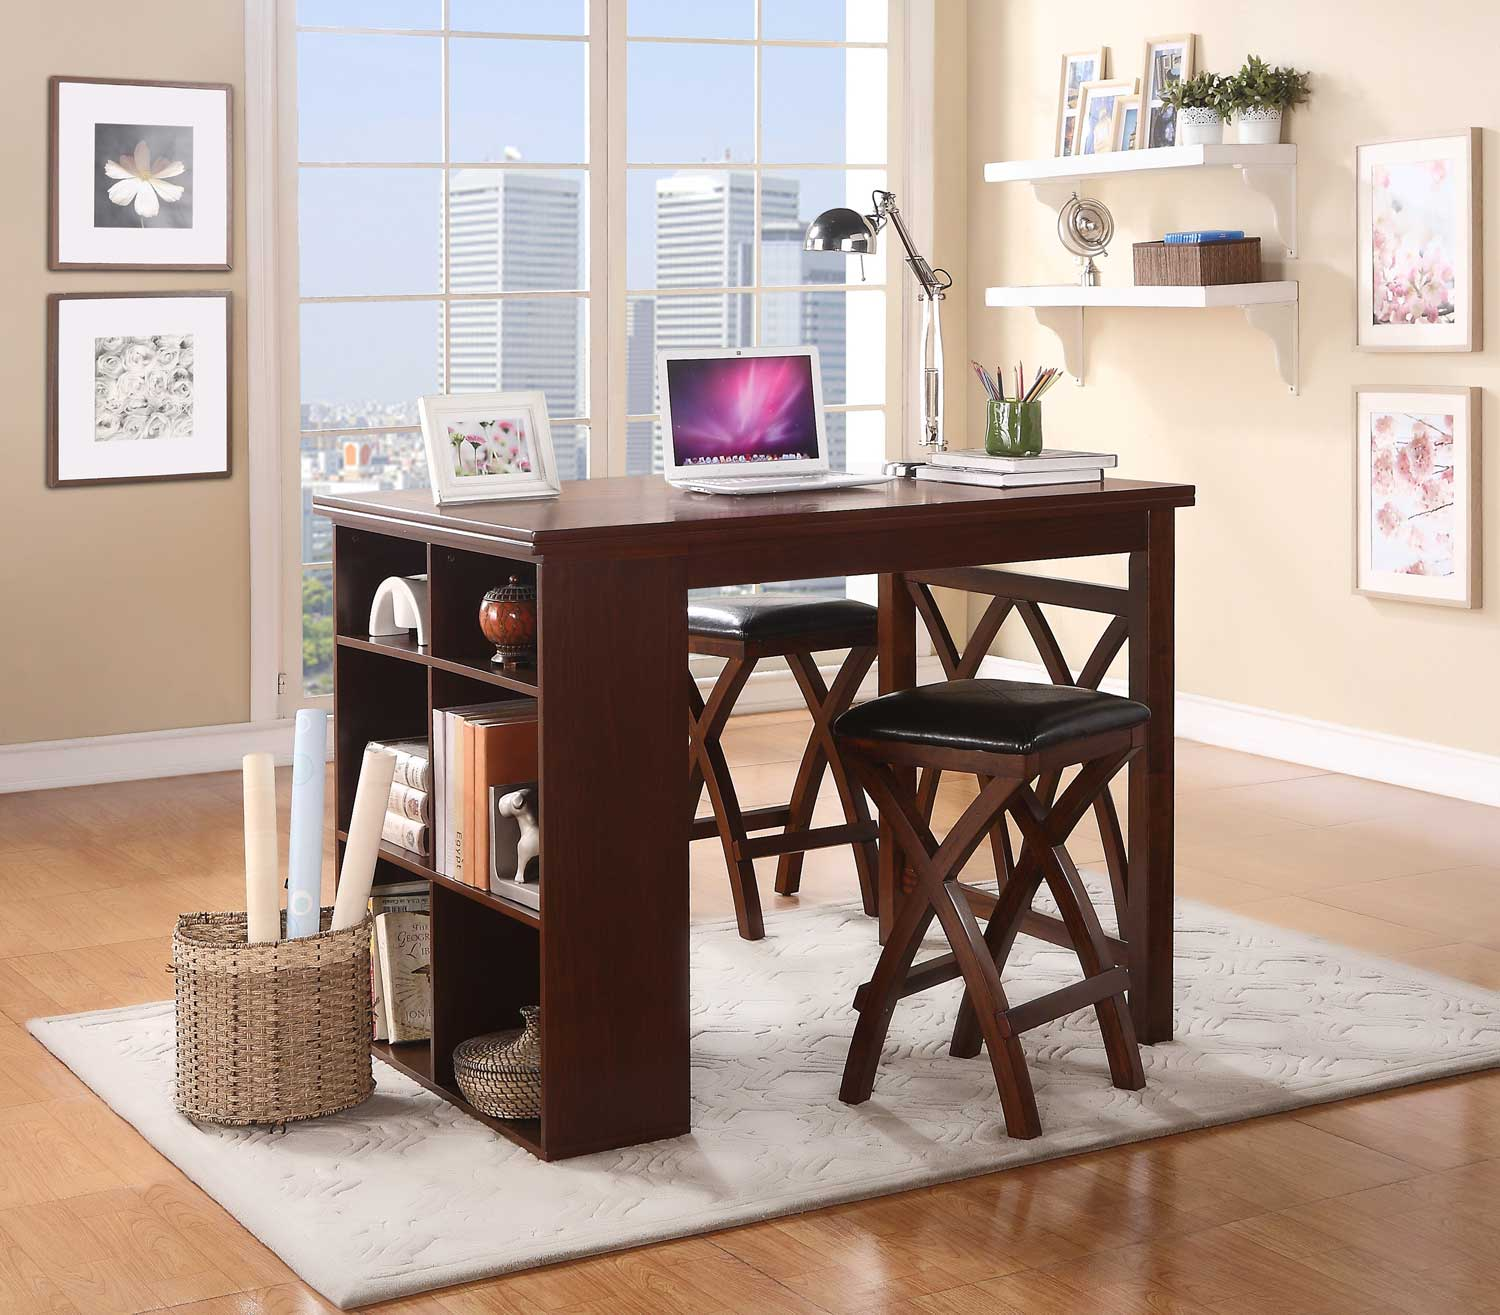 Homelegance Mably 3 Piece Counter Height Set with Shelves - Black Vinyl - Brown Cherry